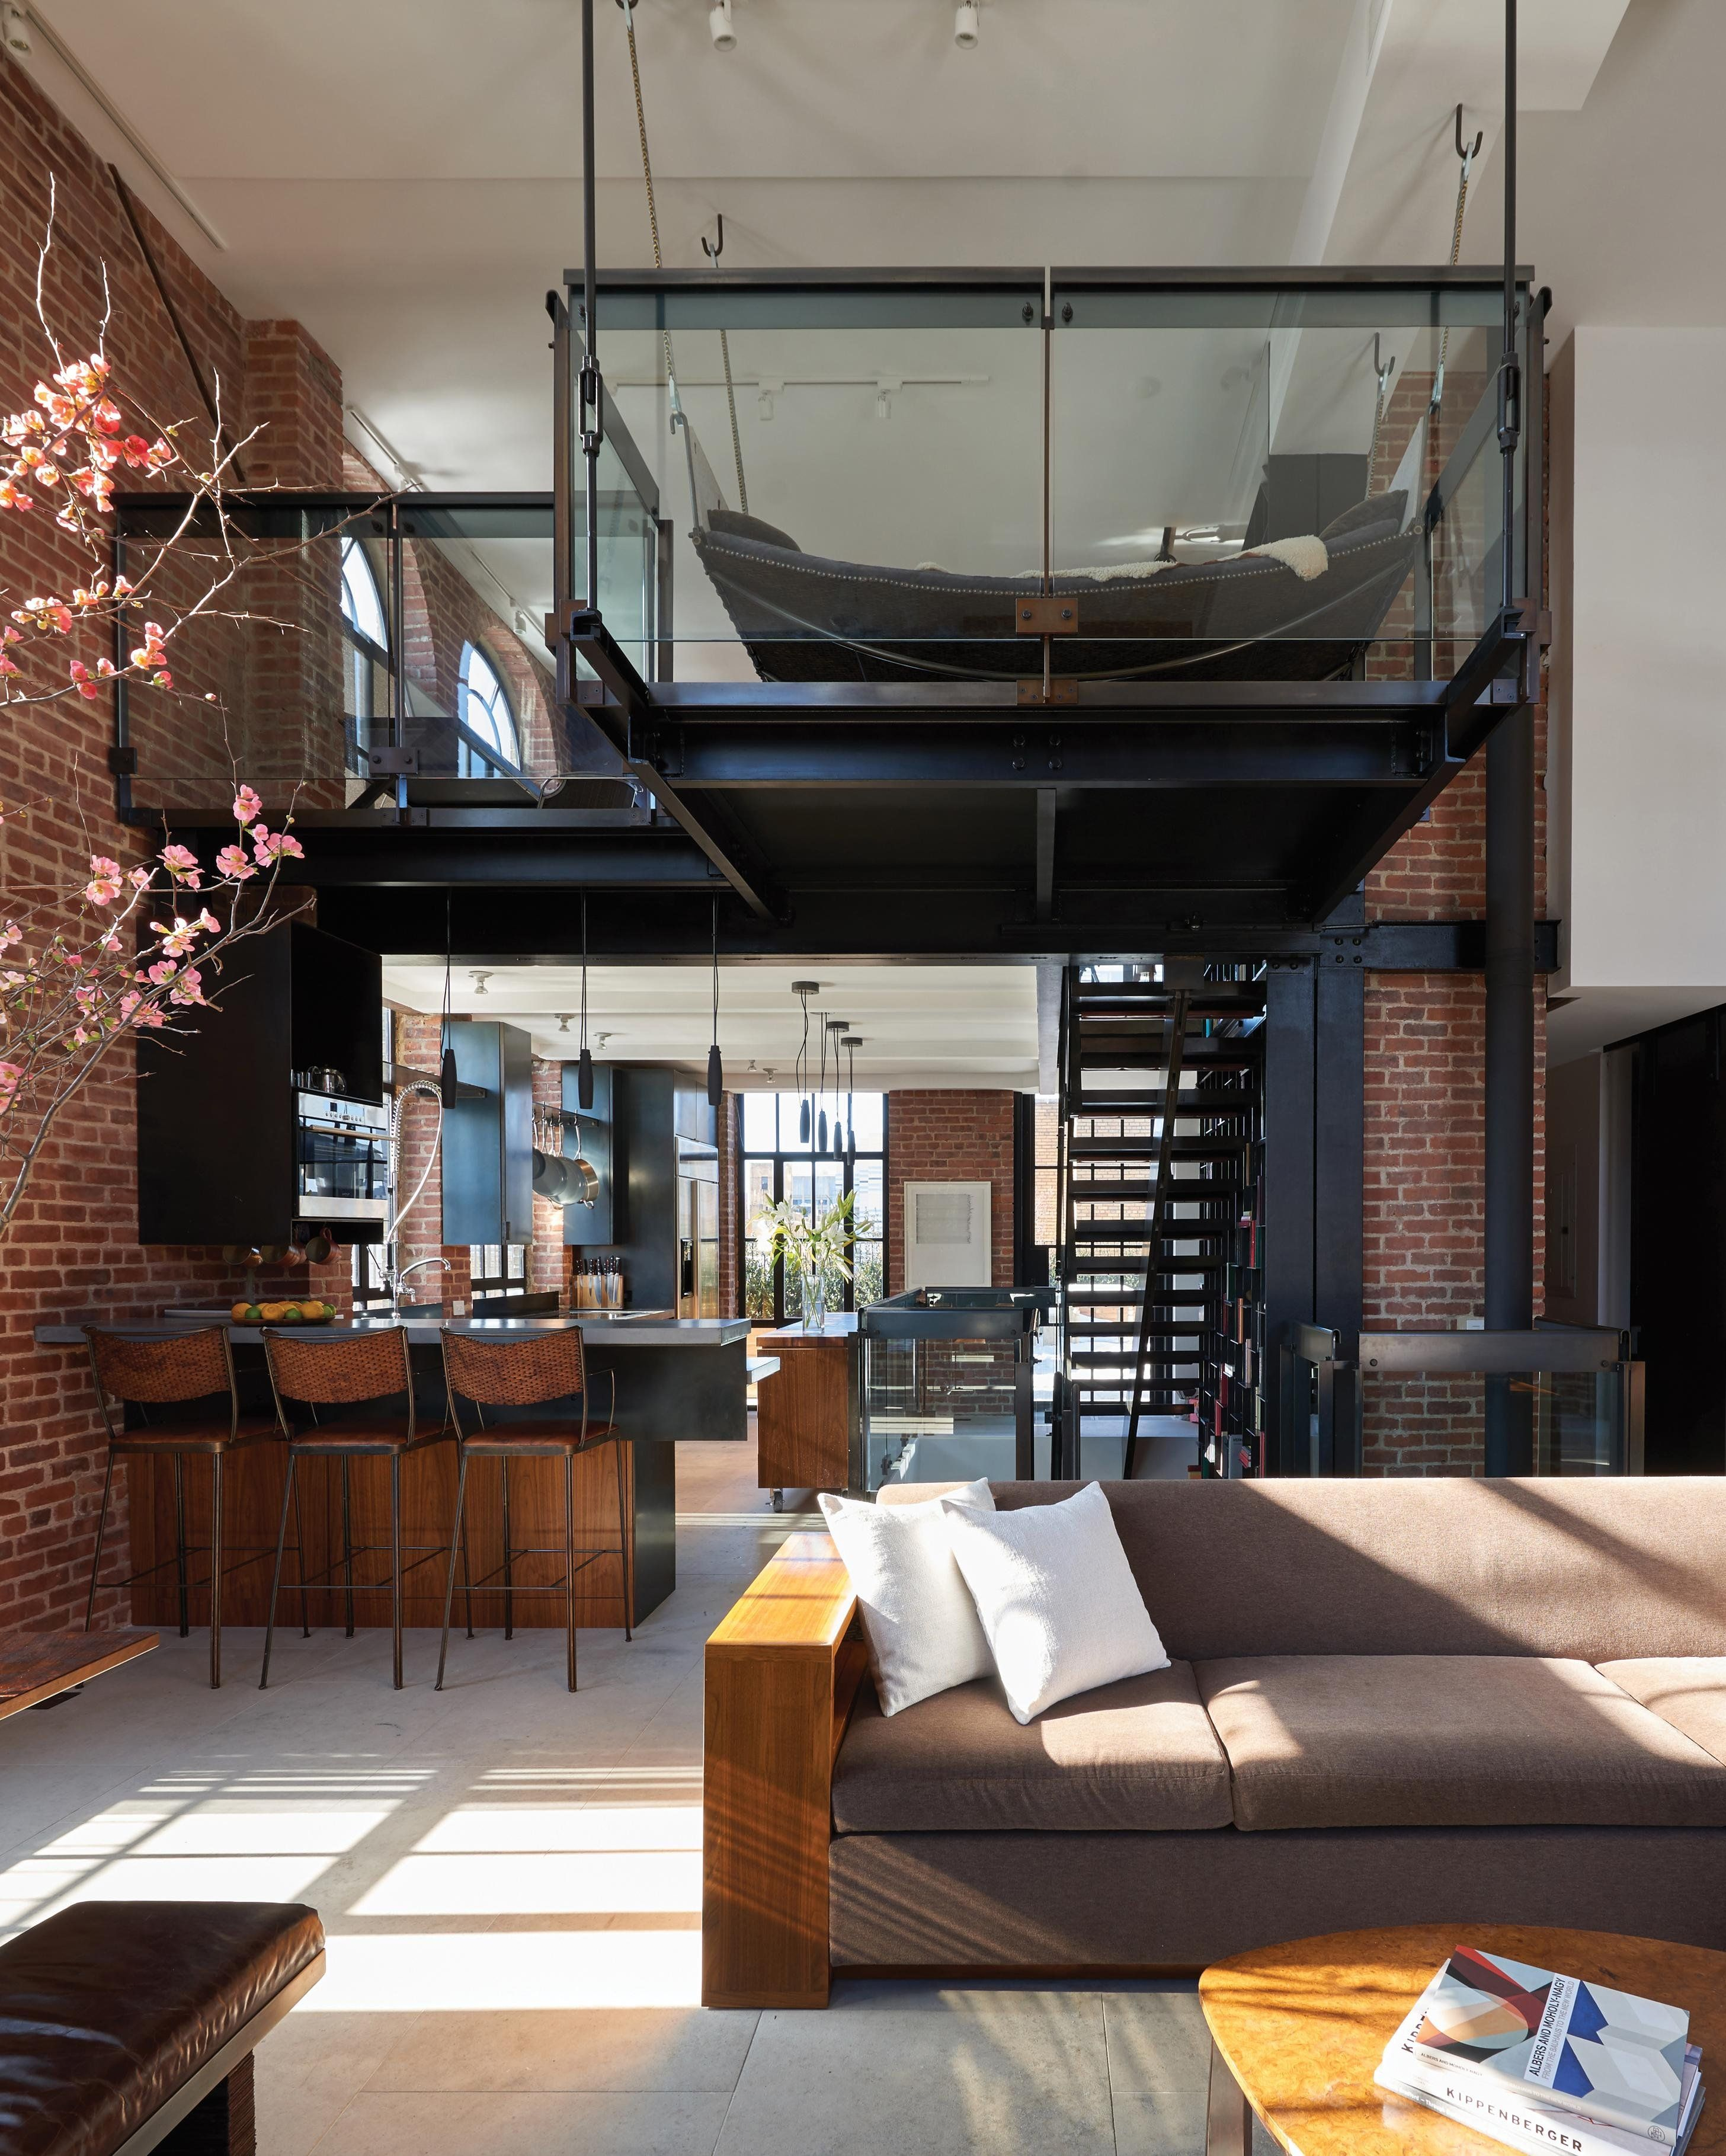 Penthouse Loft Built in Converted Water Tower in NYC. Designed By Tom Kundig [2913x3638] - Interior Design Ideas, Interior Decor and Designs, Home Design Inspiration, Room Design Ideas, Interior Decorating, Furniture And Accessories